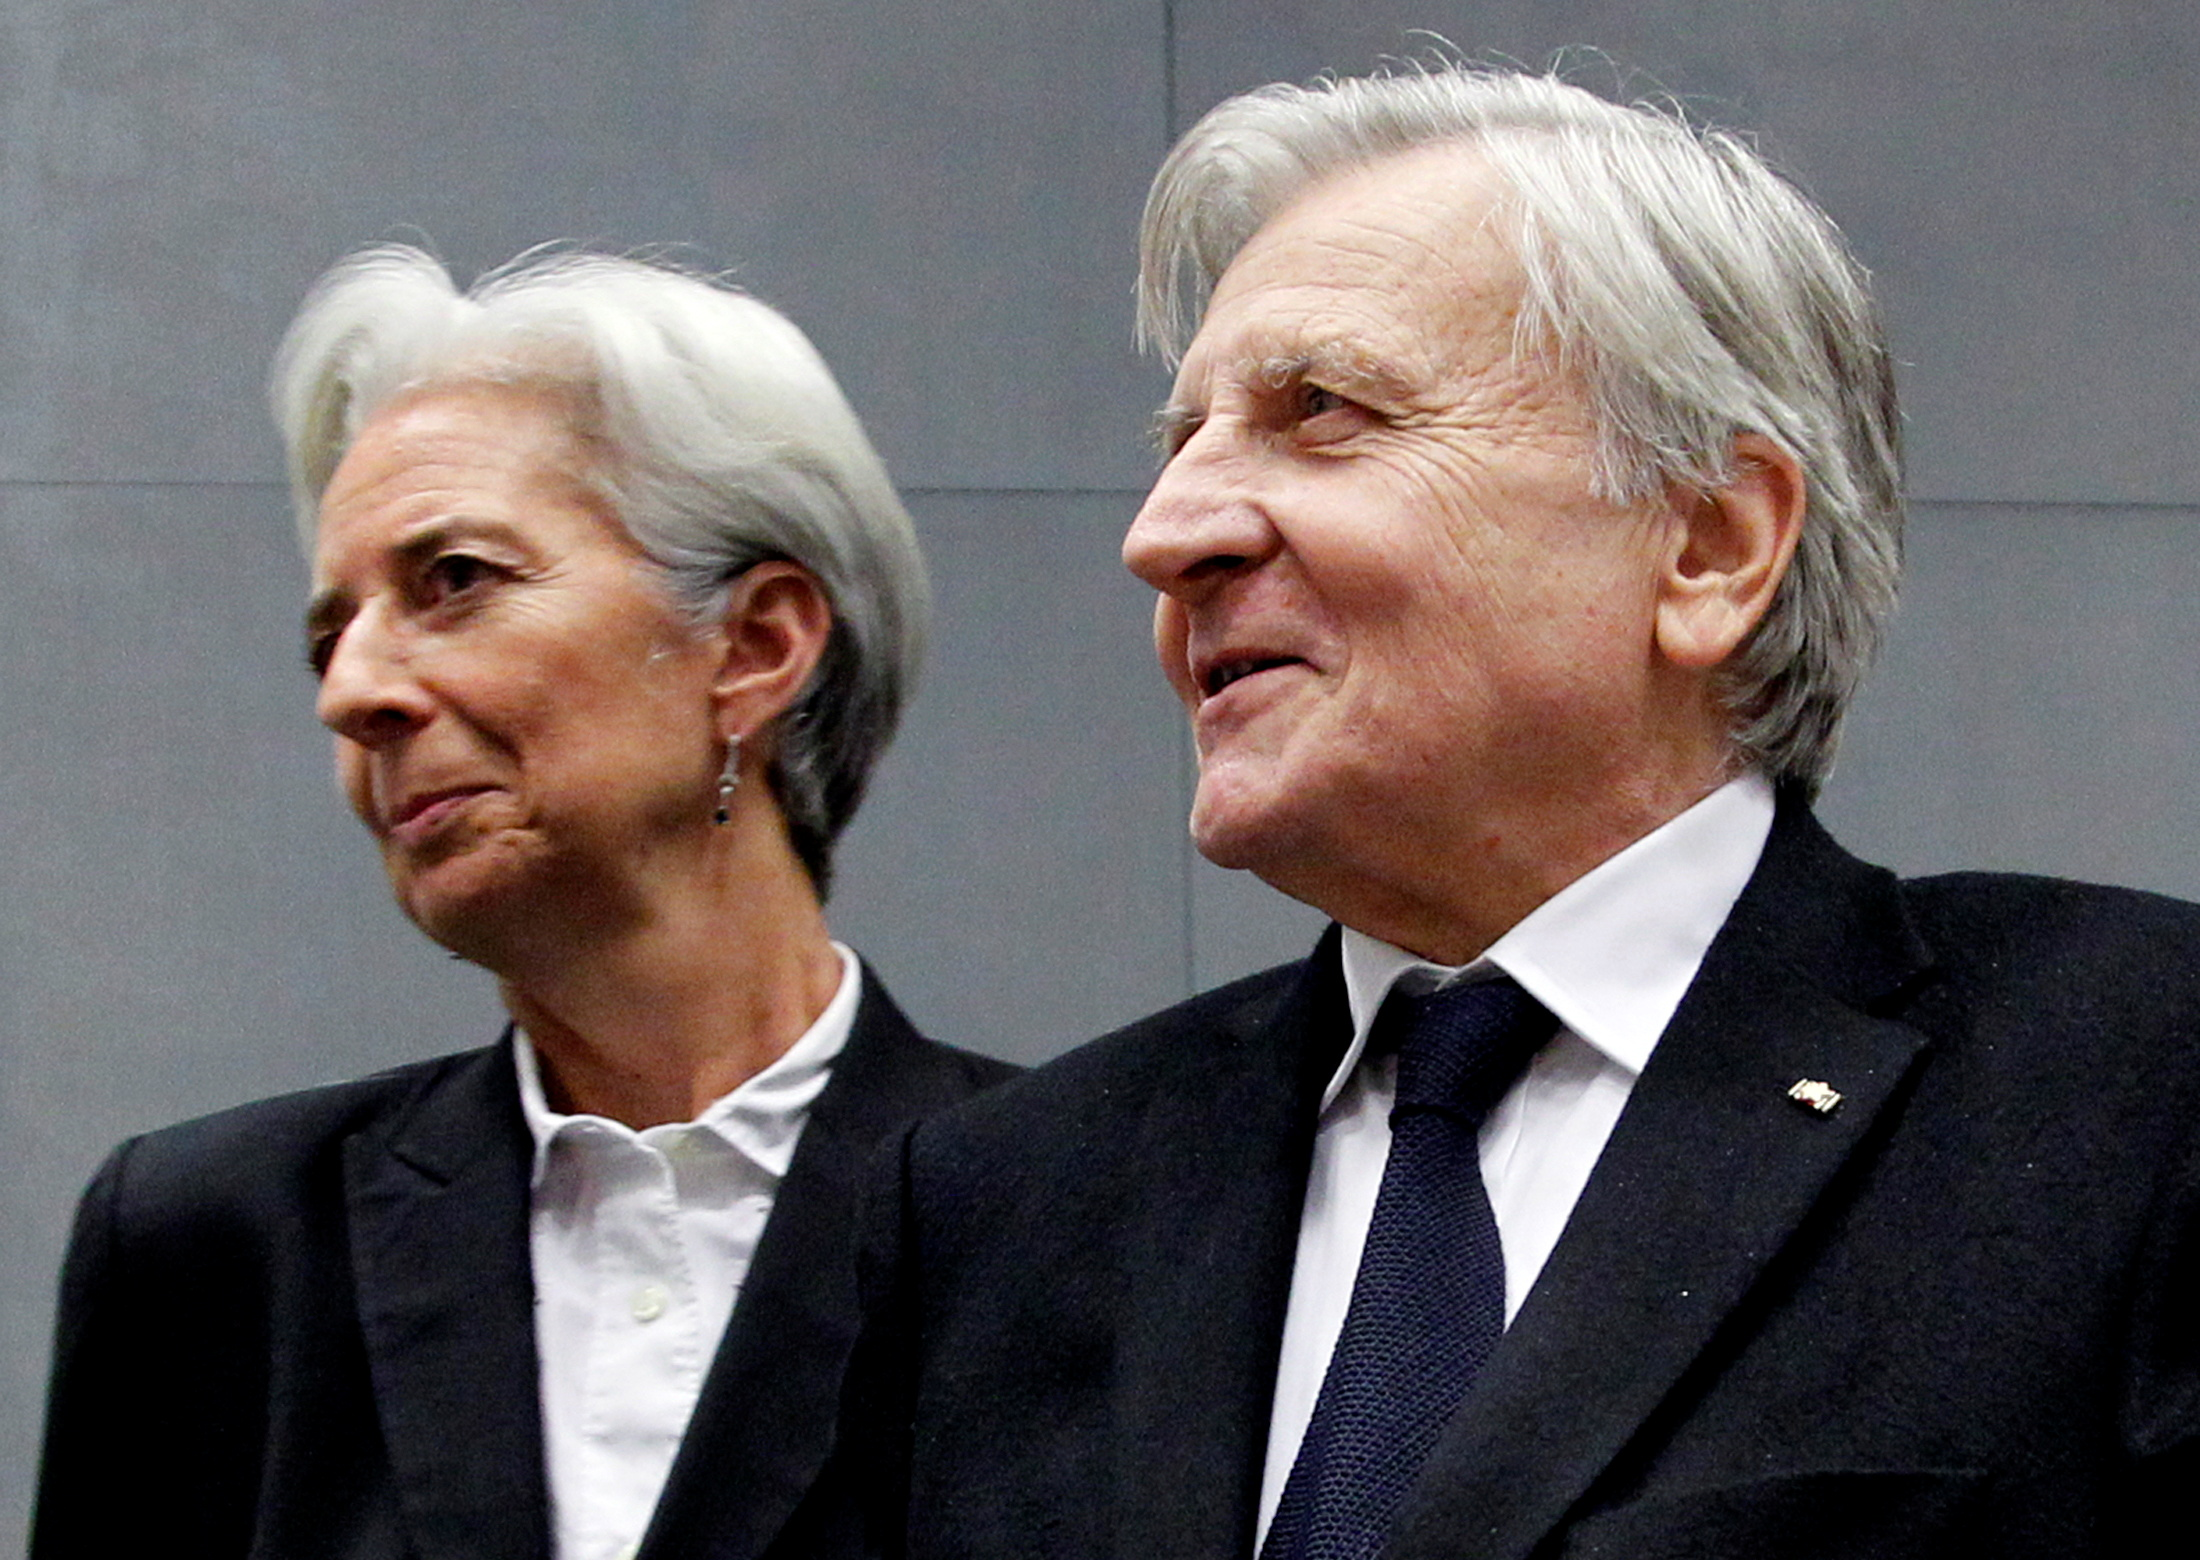 France's Finance Minister Christine Lagarde and European Central Bank (ECB) President Jean-Claude Trichet (R) arrive at a meeting on the European Stability Mechanism in Luxembourg June 20, 2011.   REUTERS/Francois Lenoir